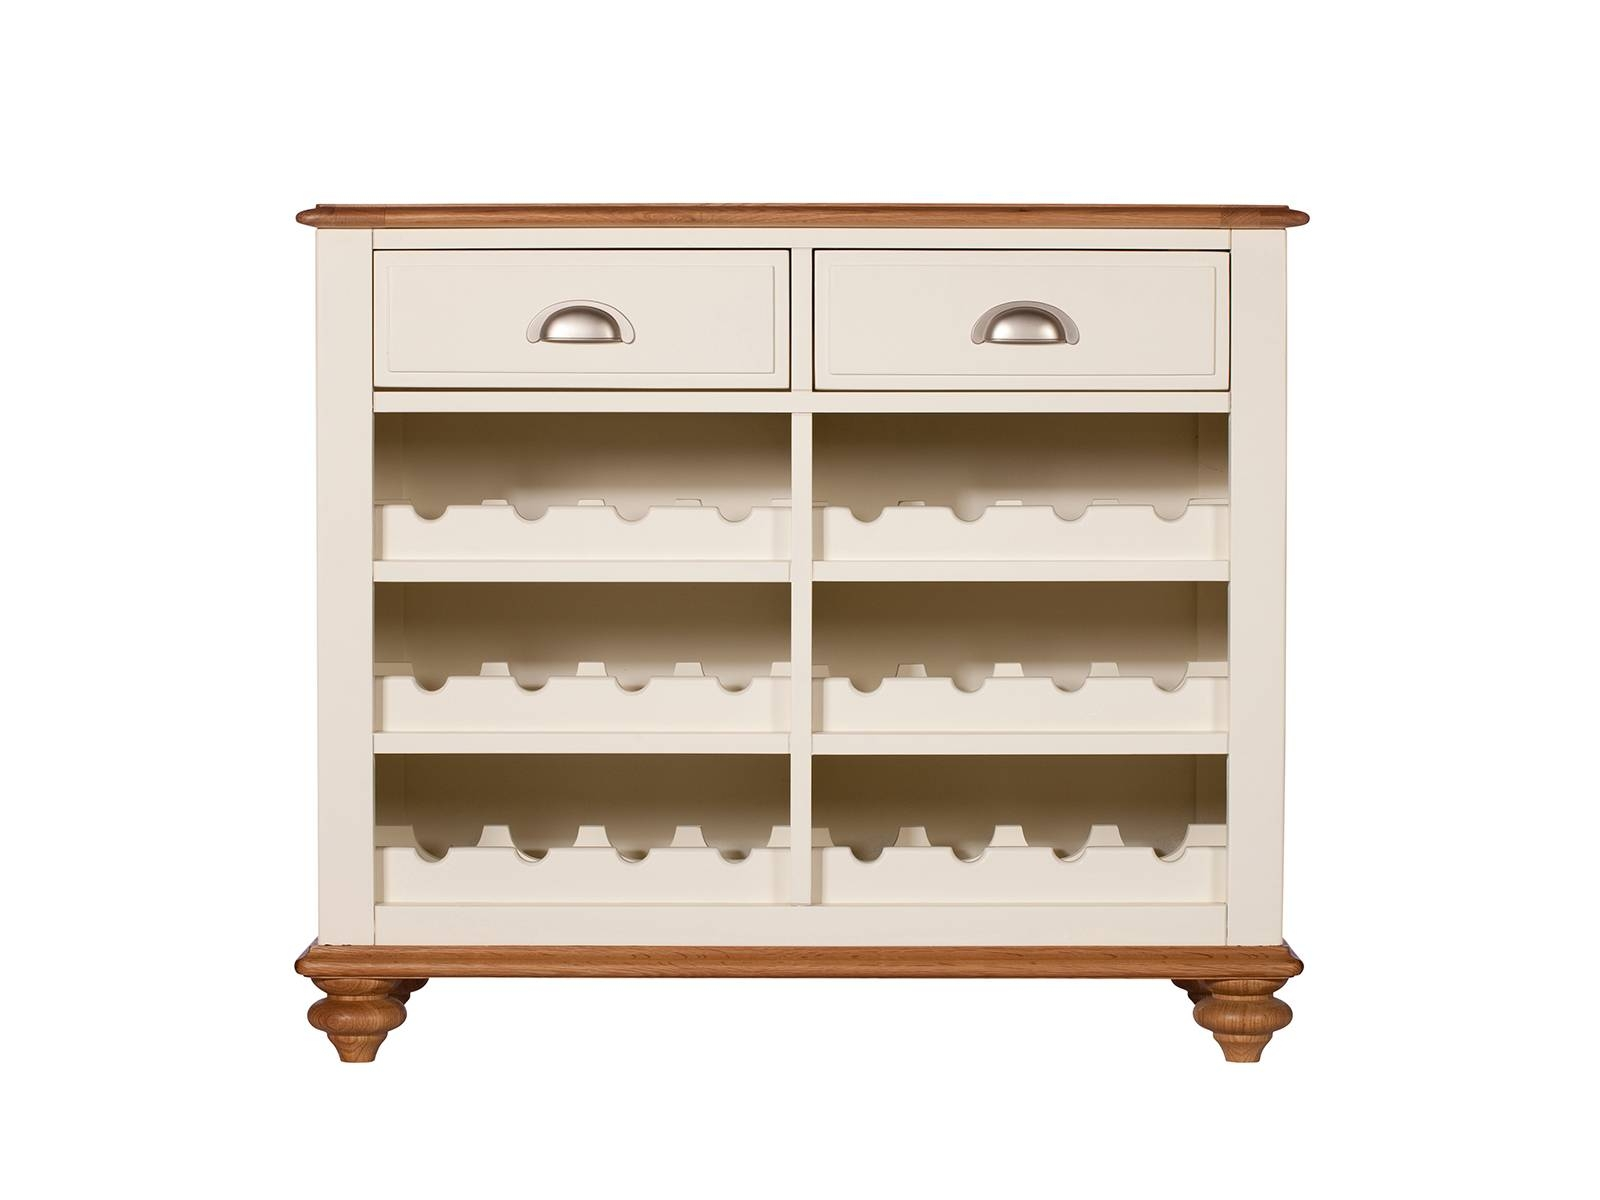 Shropshire Dining Narrow Sideboard With Wine Rack | Sideboards Inside Narrow Sideboards (#13 of 20)